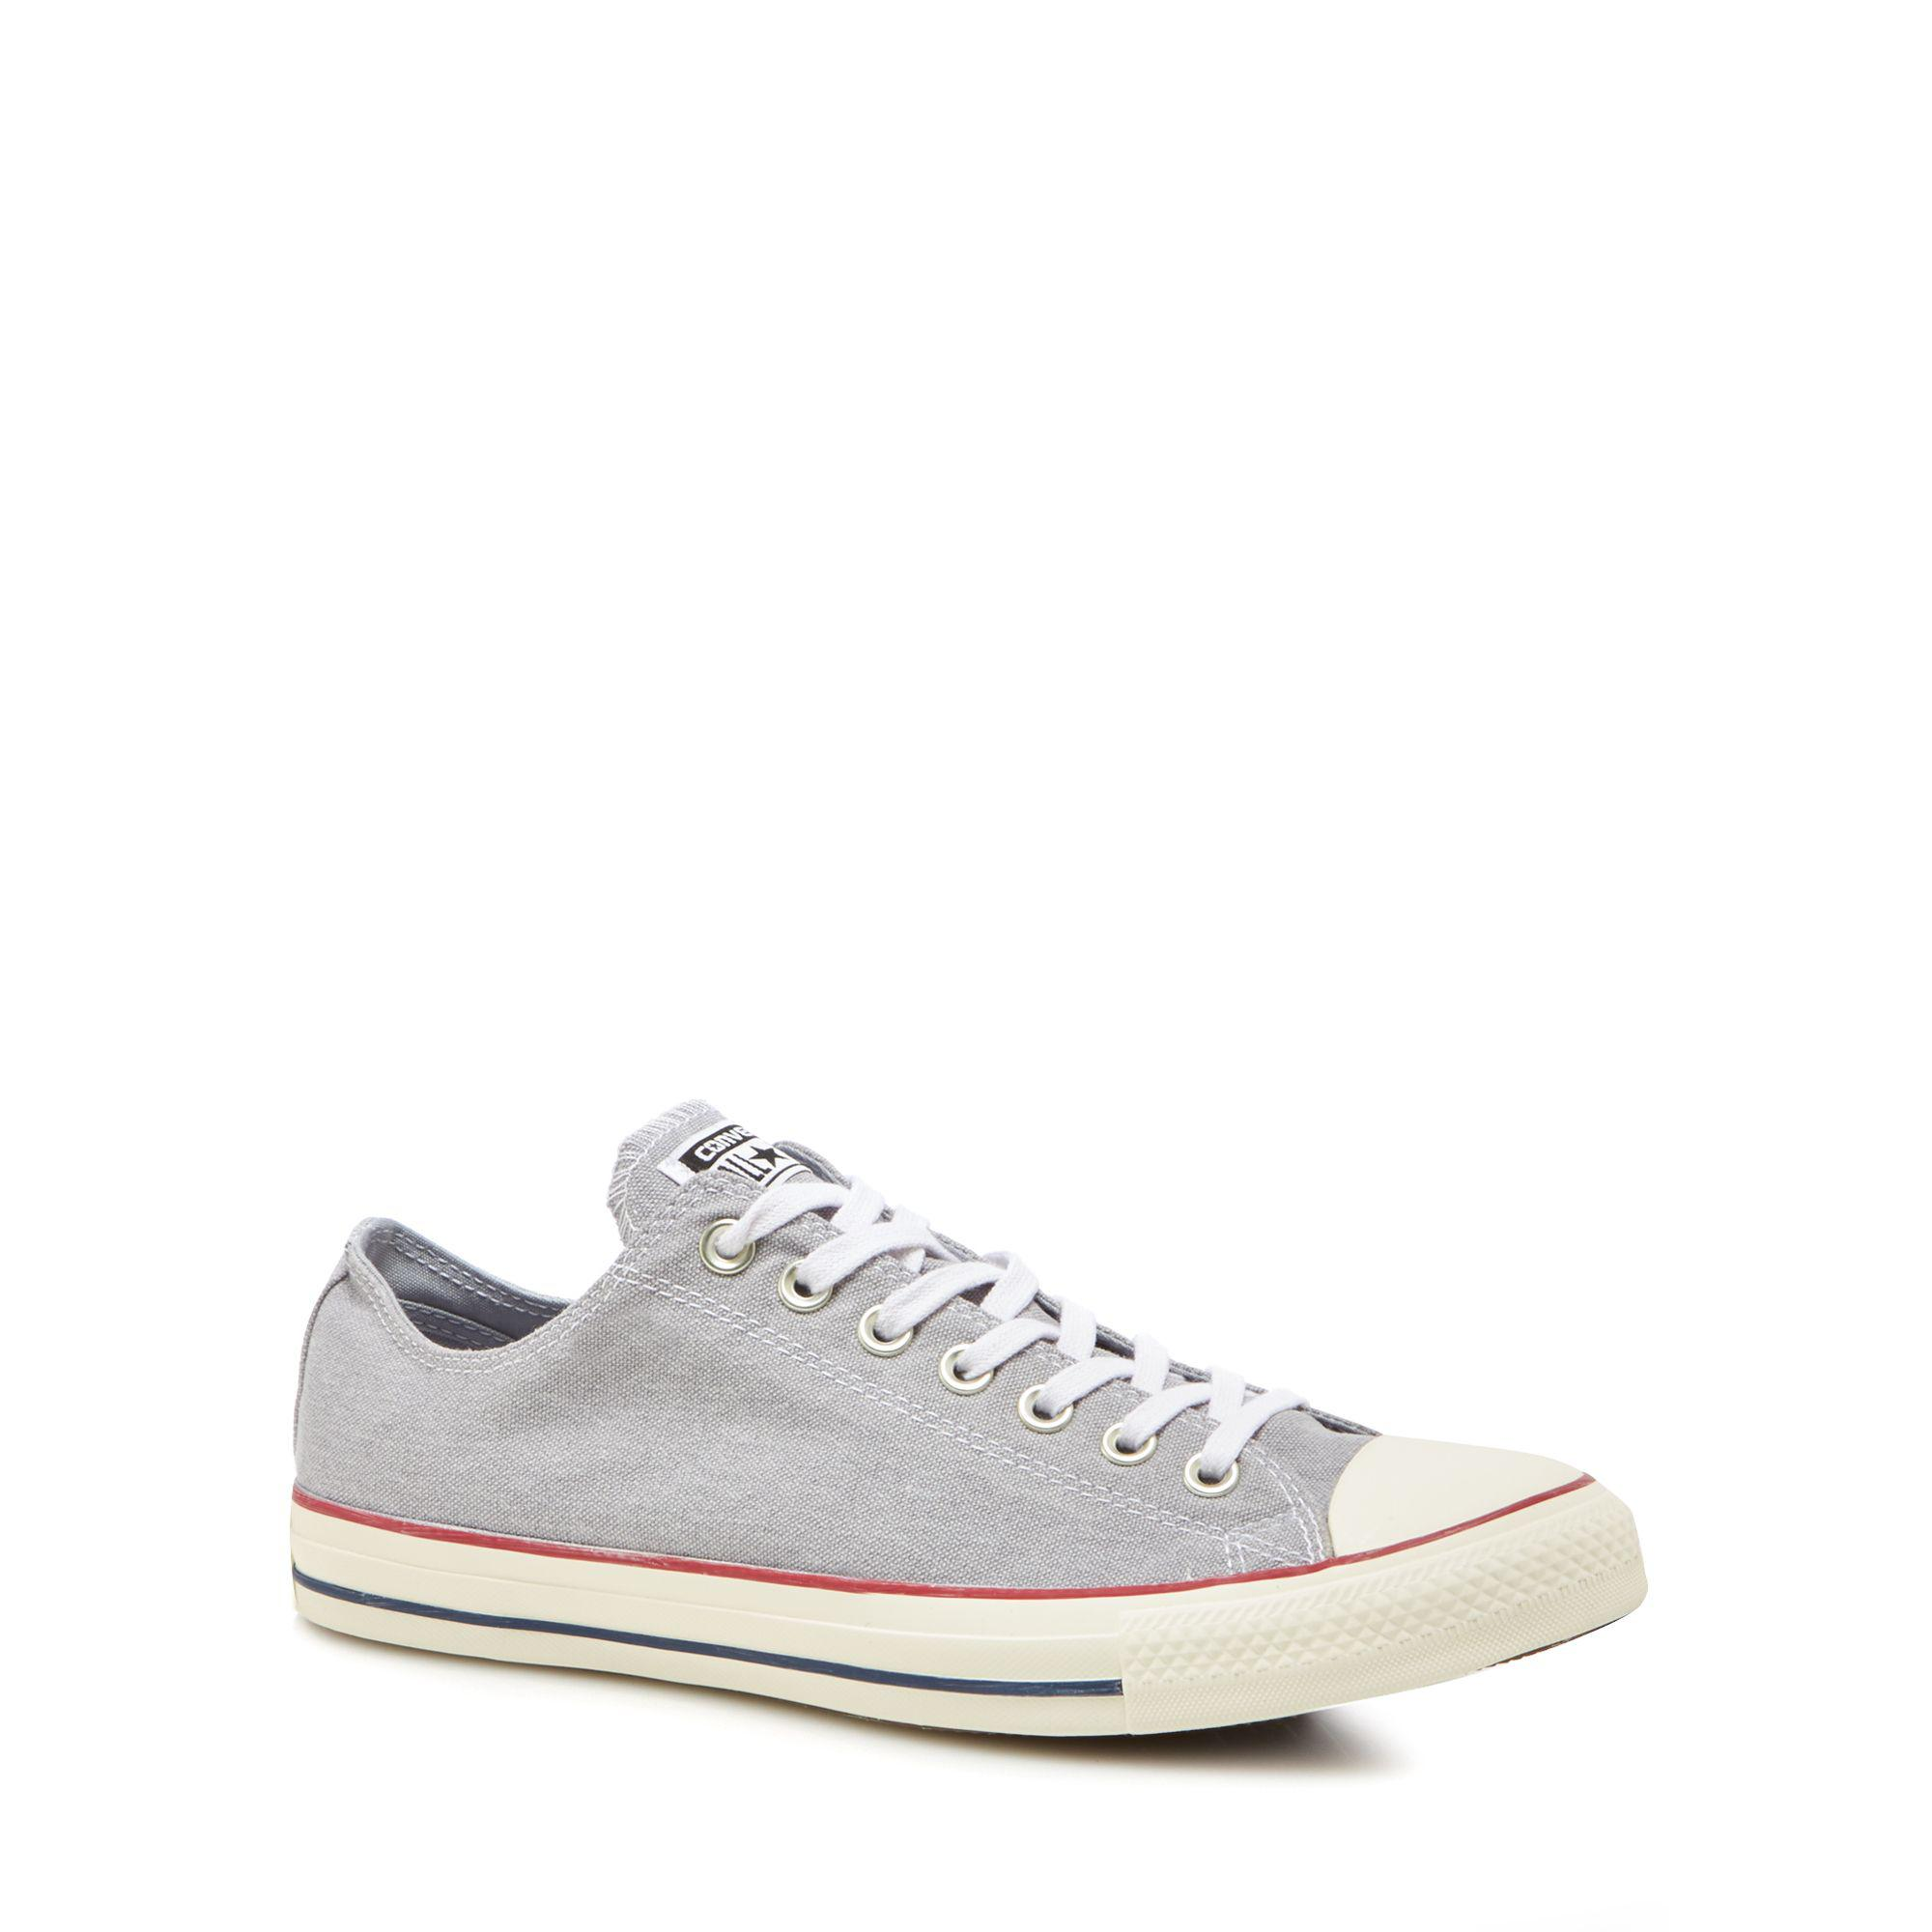 dbbefad778c311 Converse Light Grey Canvas  chuck Taylor All Star  Trainers in Gray ...